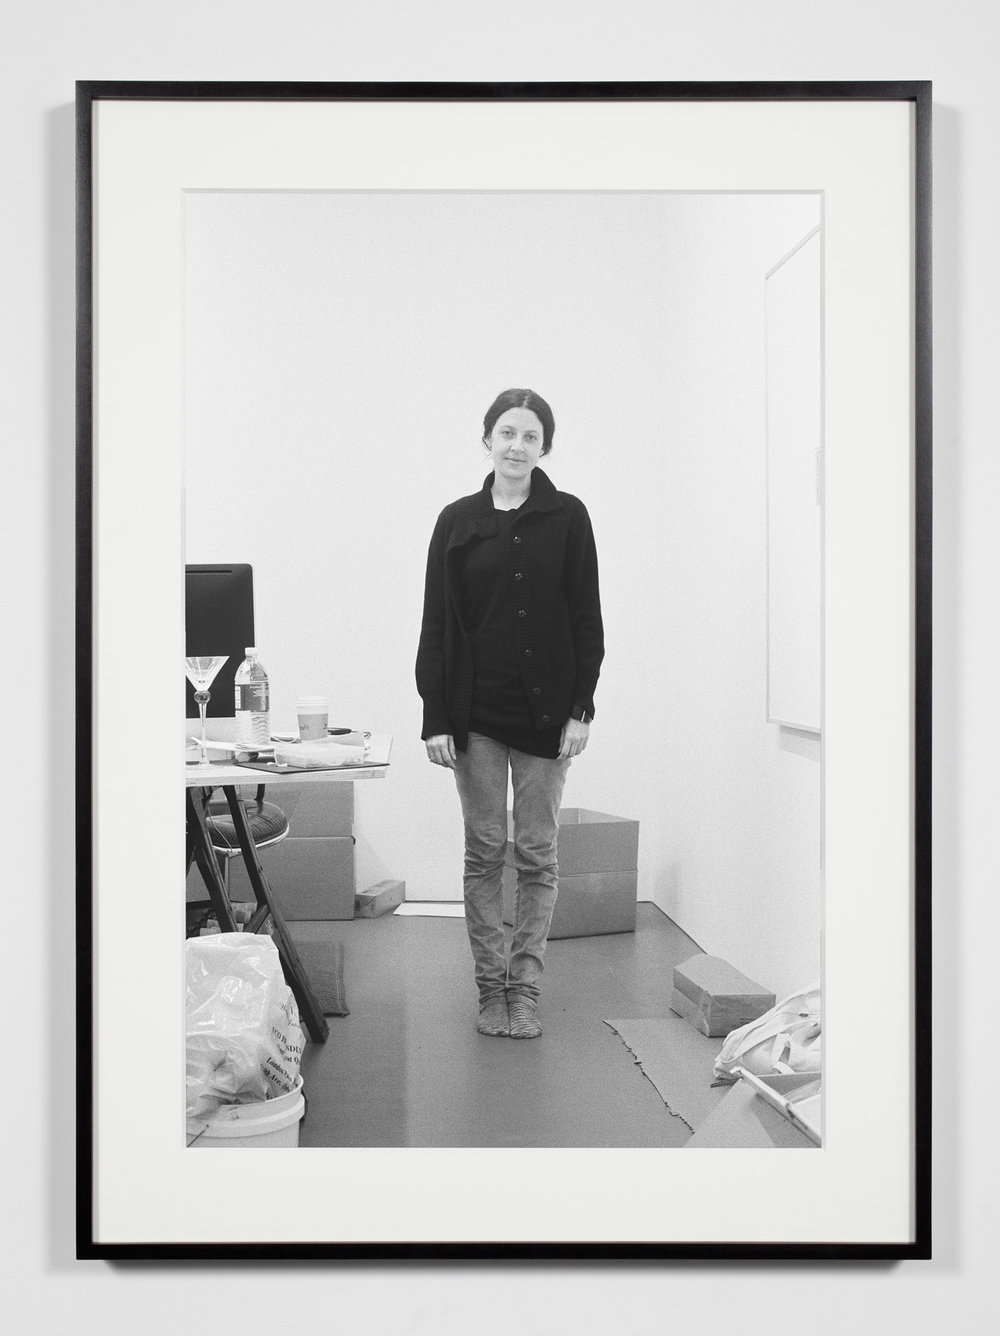 Gallerist, New York, New York, February 28, 2009    2011   Epson Ultrachrome K3 archival ink jet print on Hahnemühle Photo Rag paper  36 3/8 x 26 3/8 inches   Industrial Portraits, 2008–